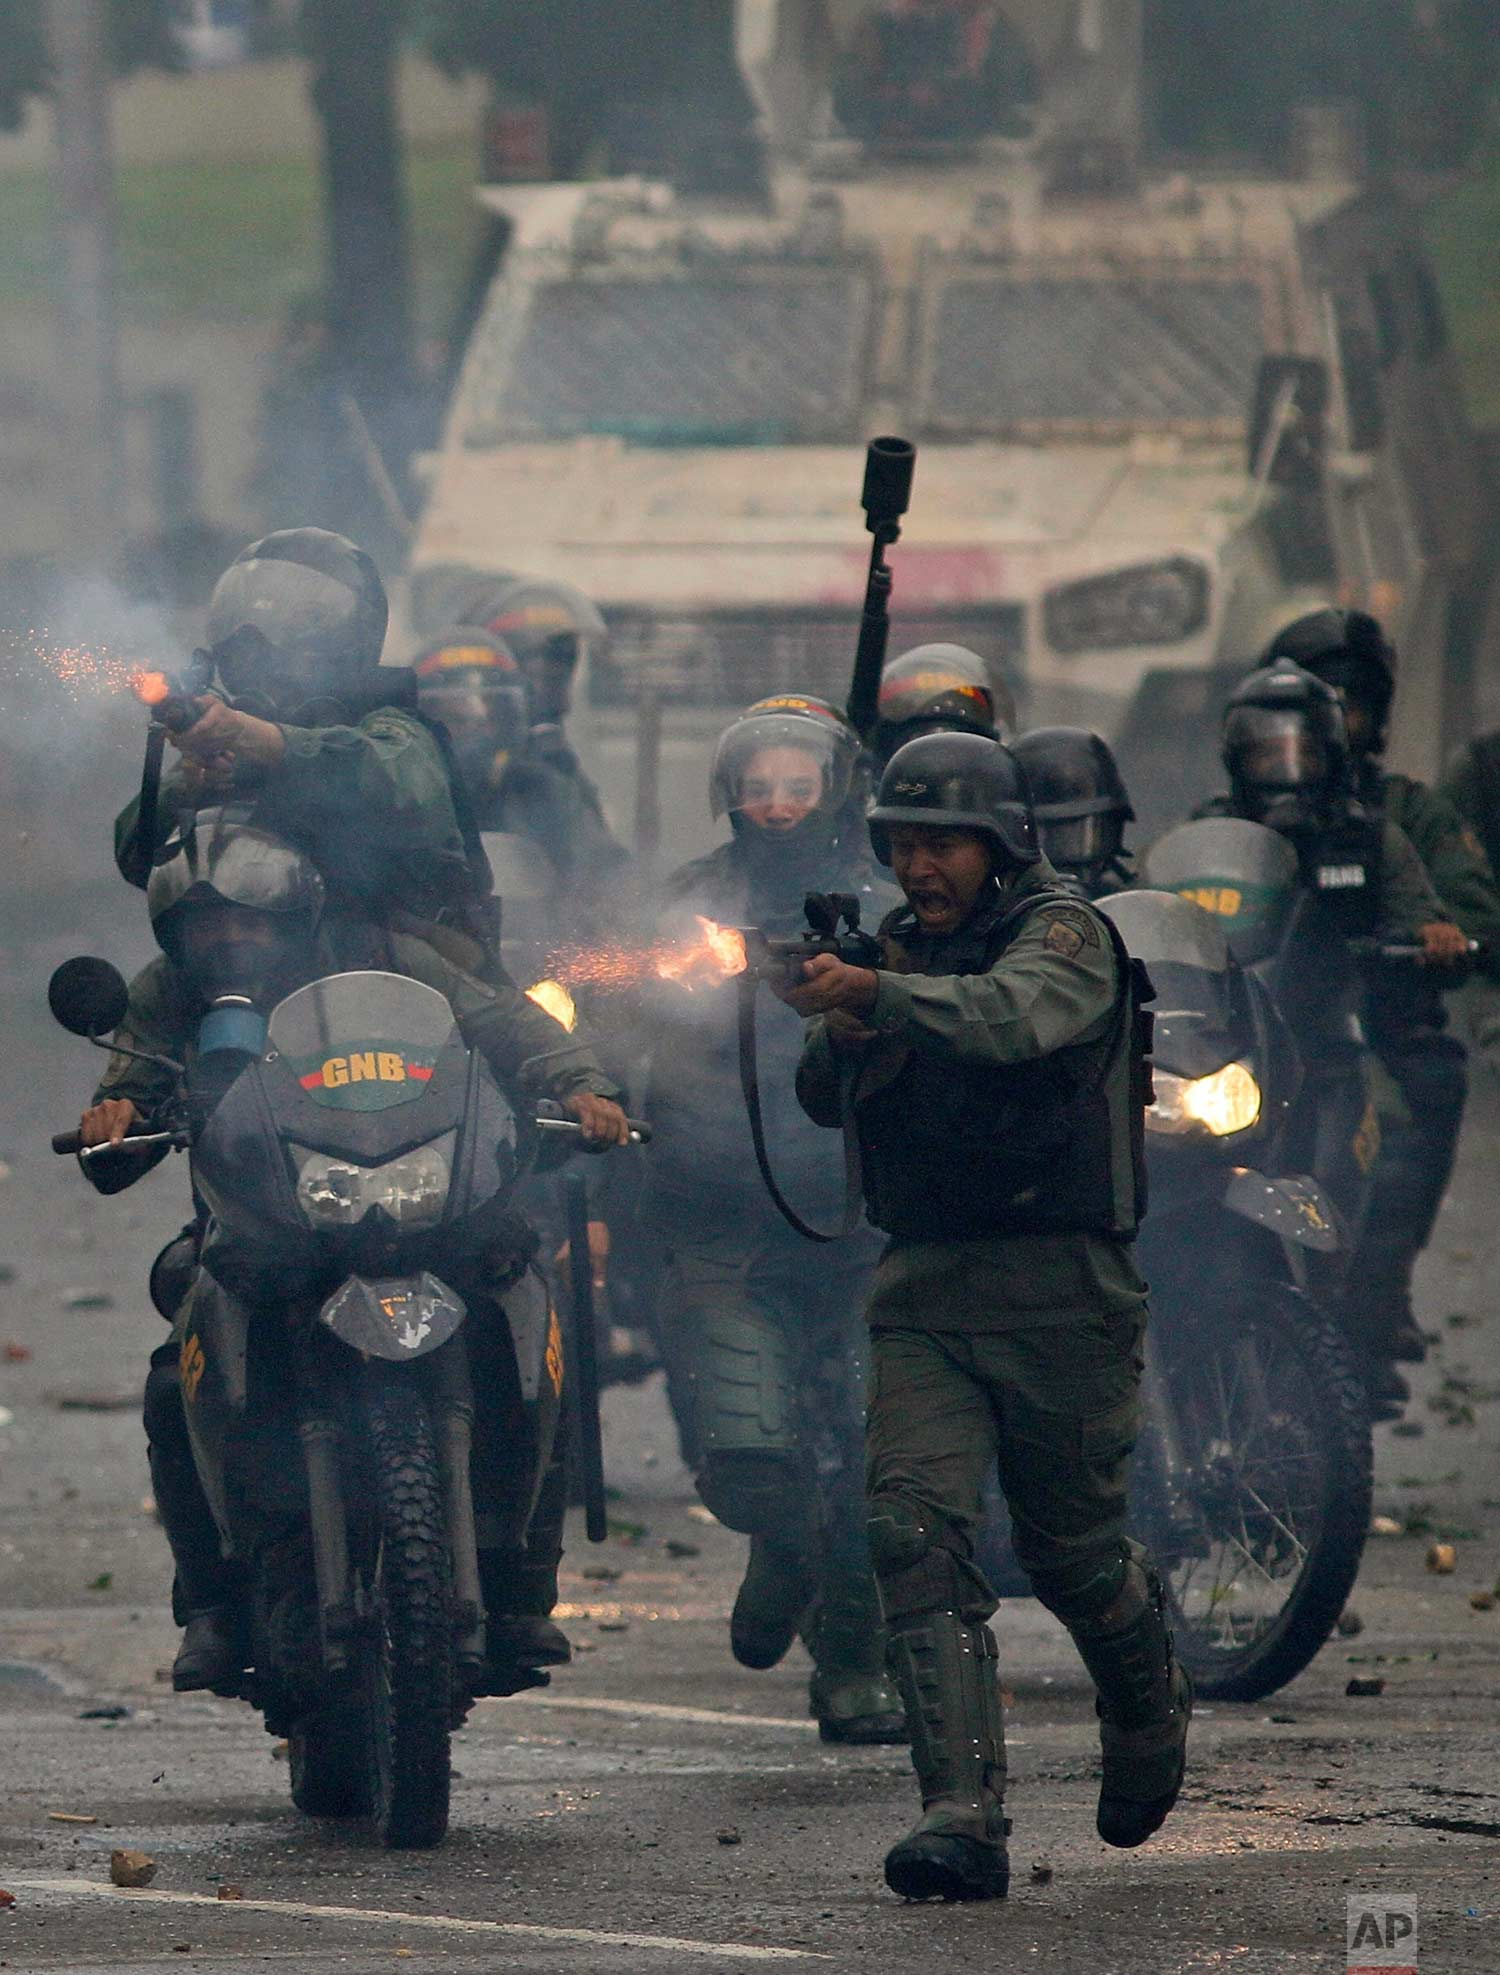 Bolivarian National Guards fire rubber bullets as they advance on anti-government demonstrators in Caracas, Venezuela, Friday, July 28, 2017, two days before the vote to begin the rewriting of Venezuela's constitution. (AP Photo/Ariana Cubillos)